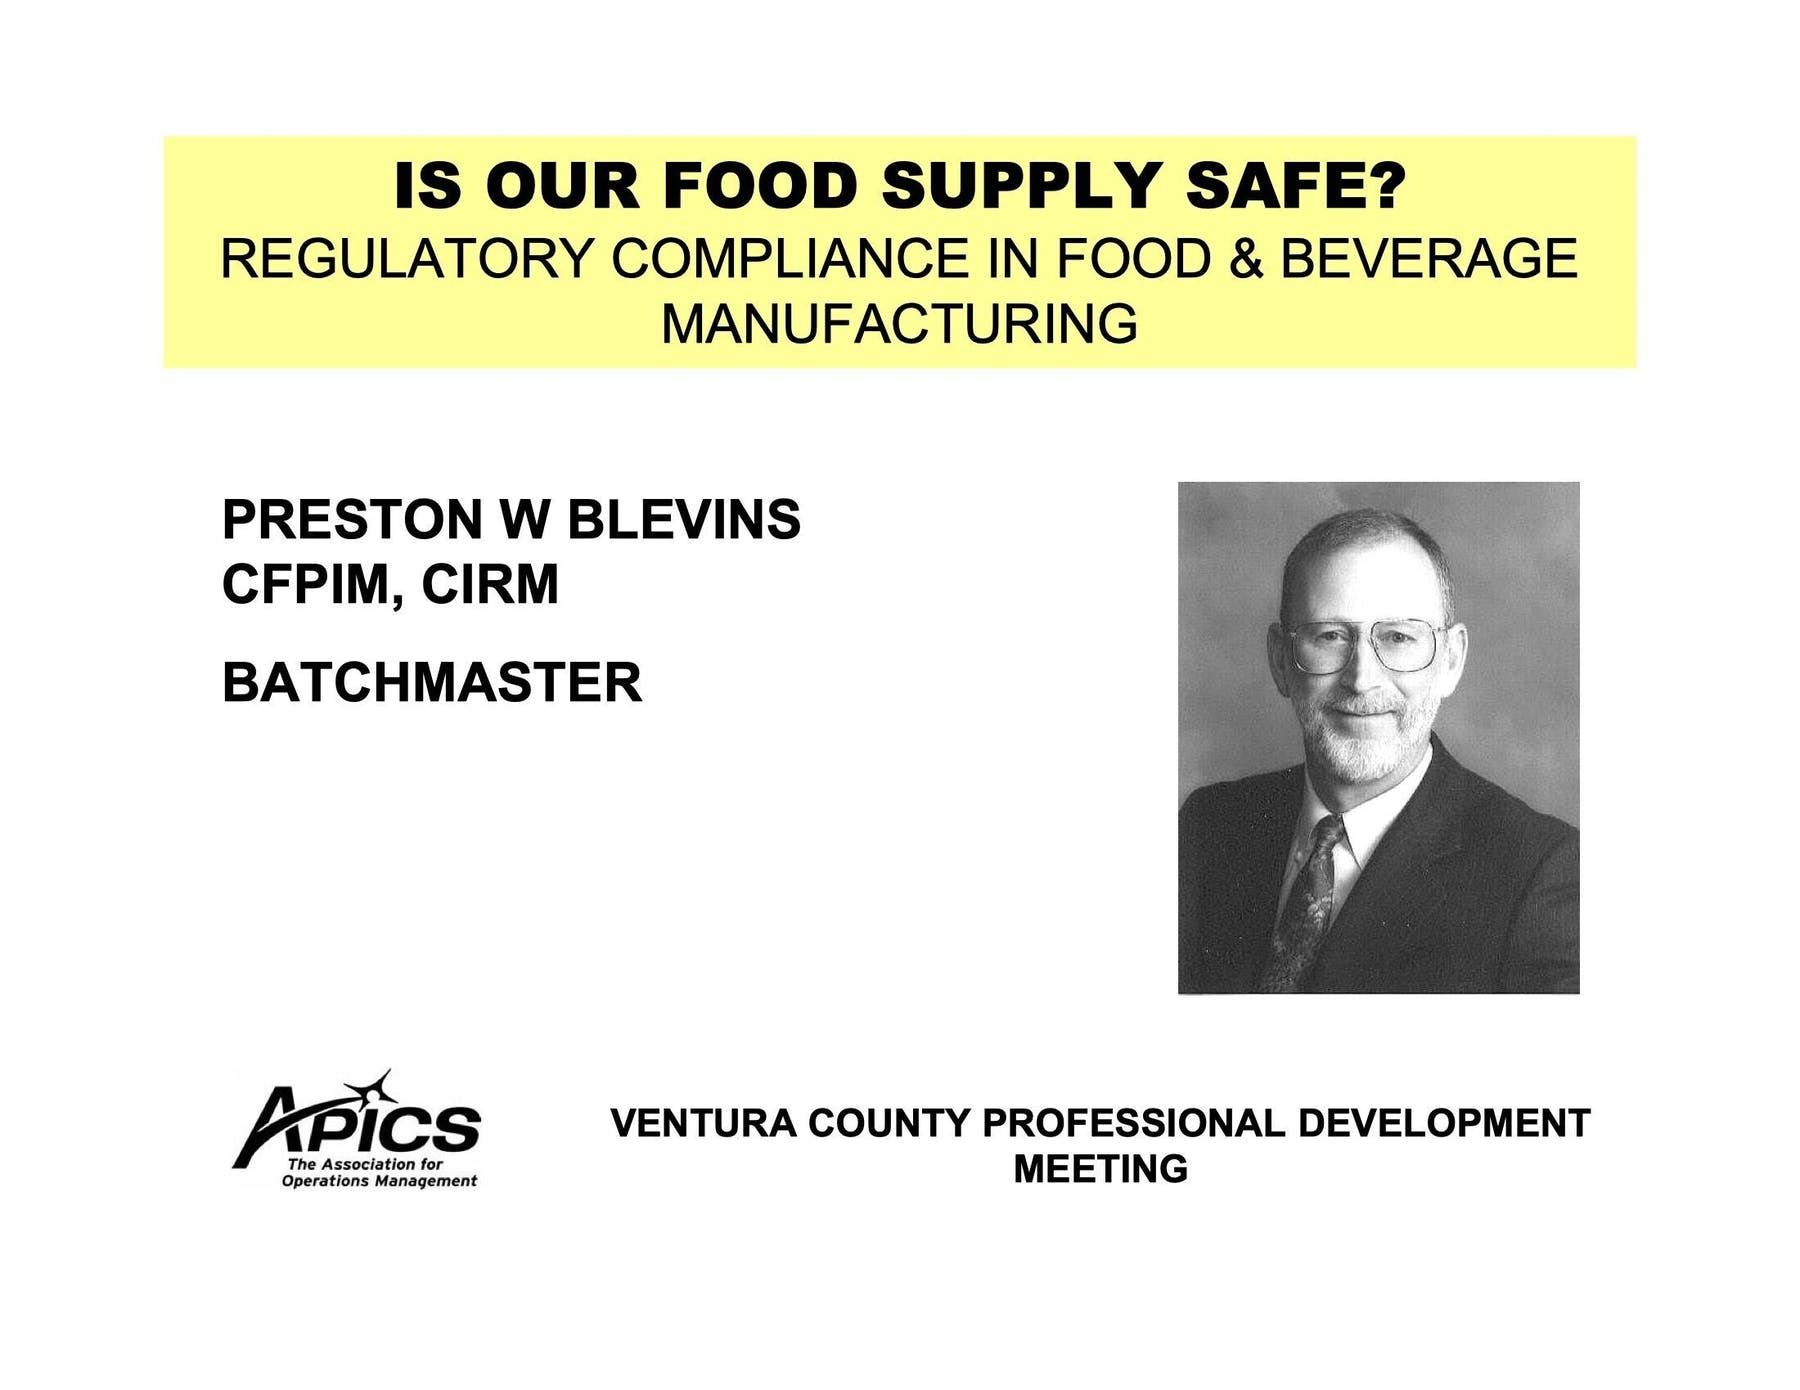 BatchMaster Manufacturing White Paper - Is Our Food Supply Safe? Regulatory Compliance in Food & Beverage Manufacturing